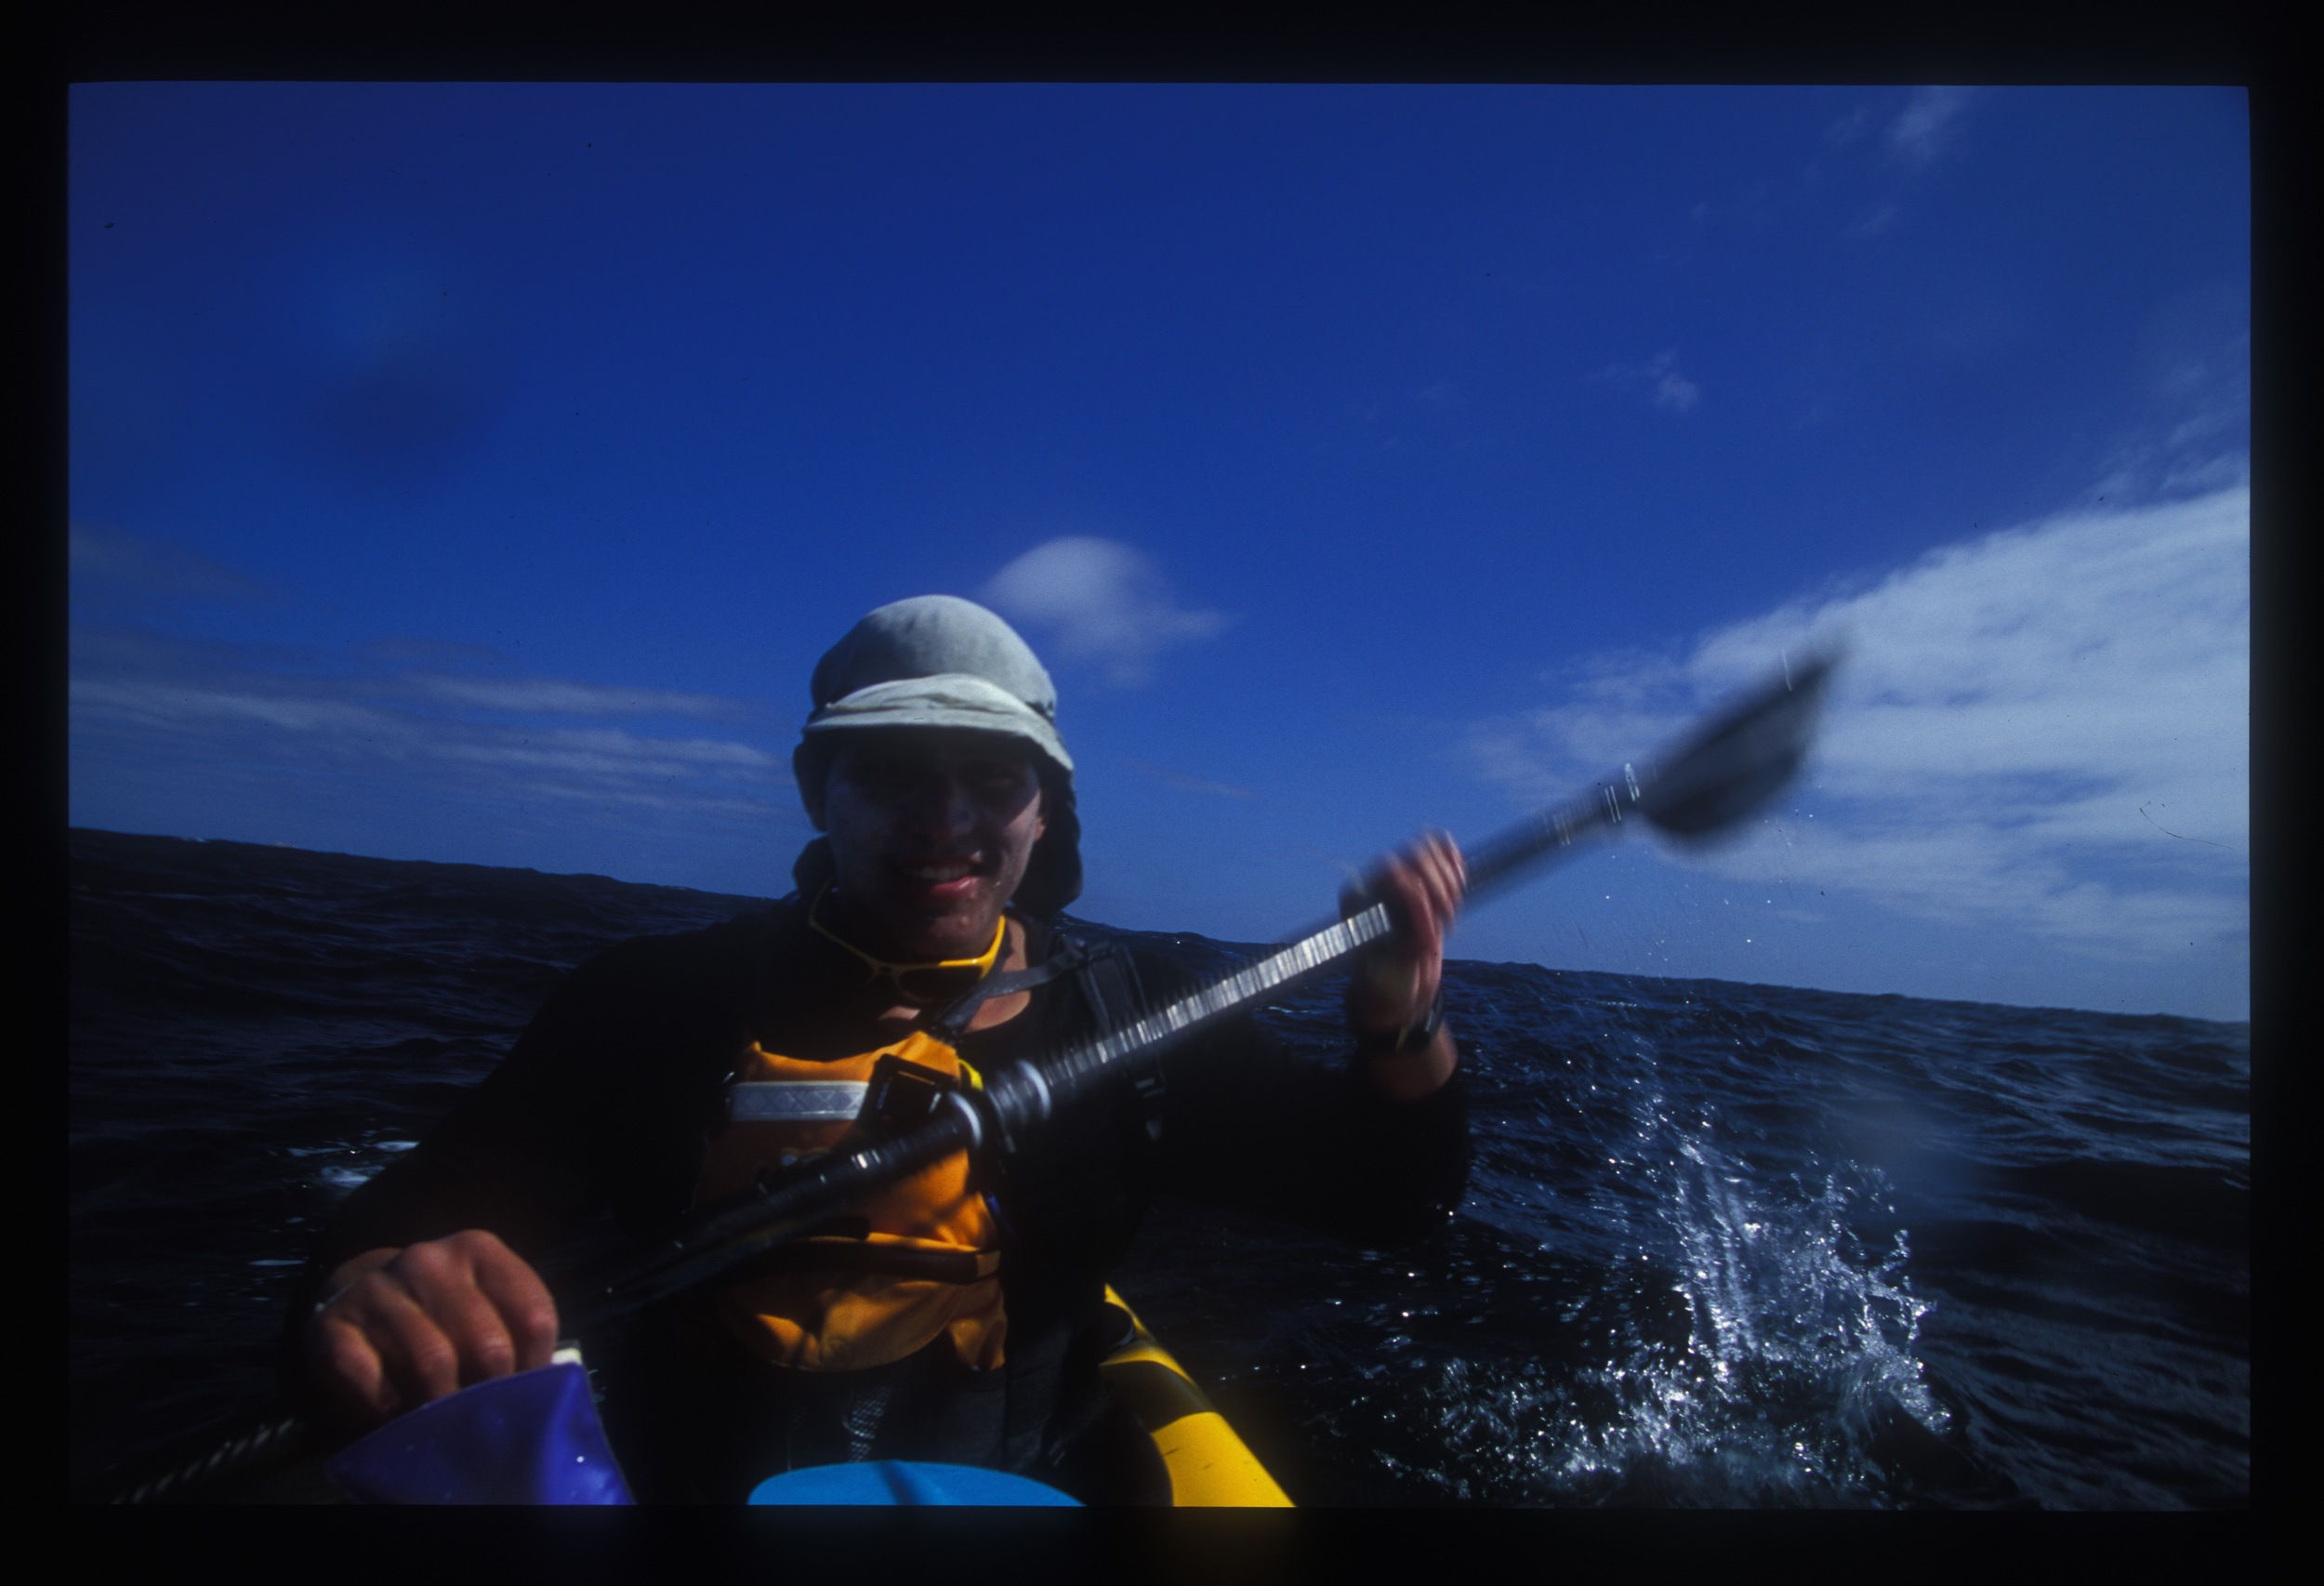 compressed paddle in motion.jpg